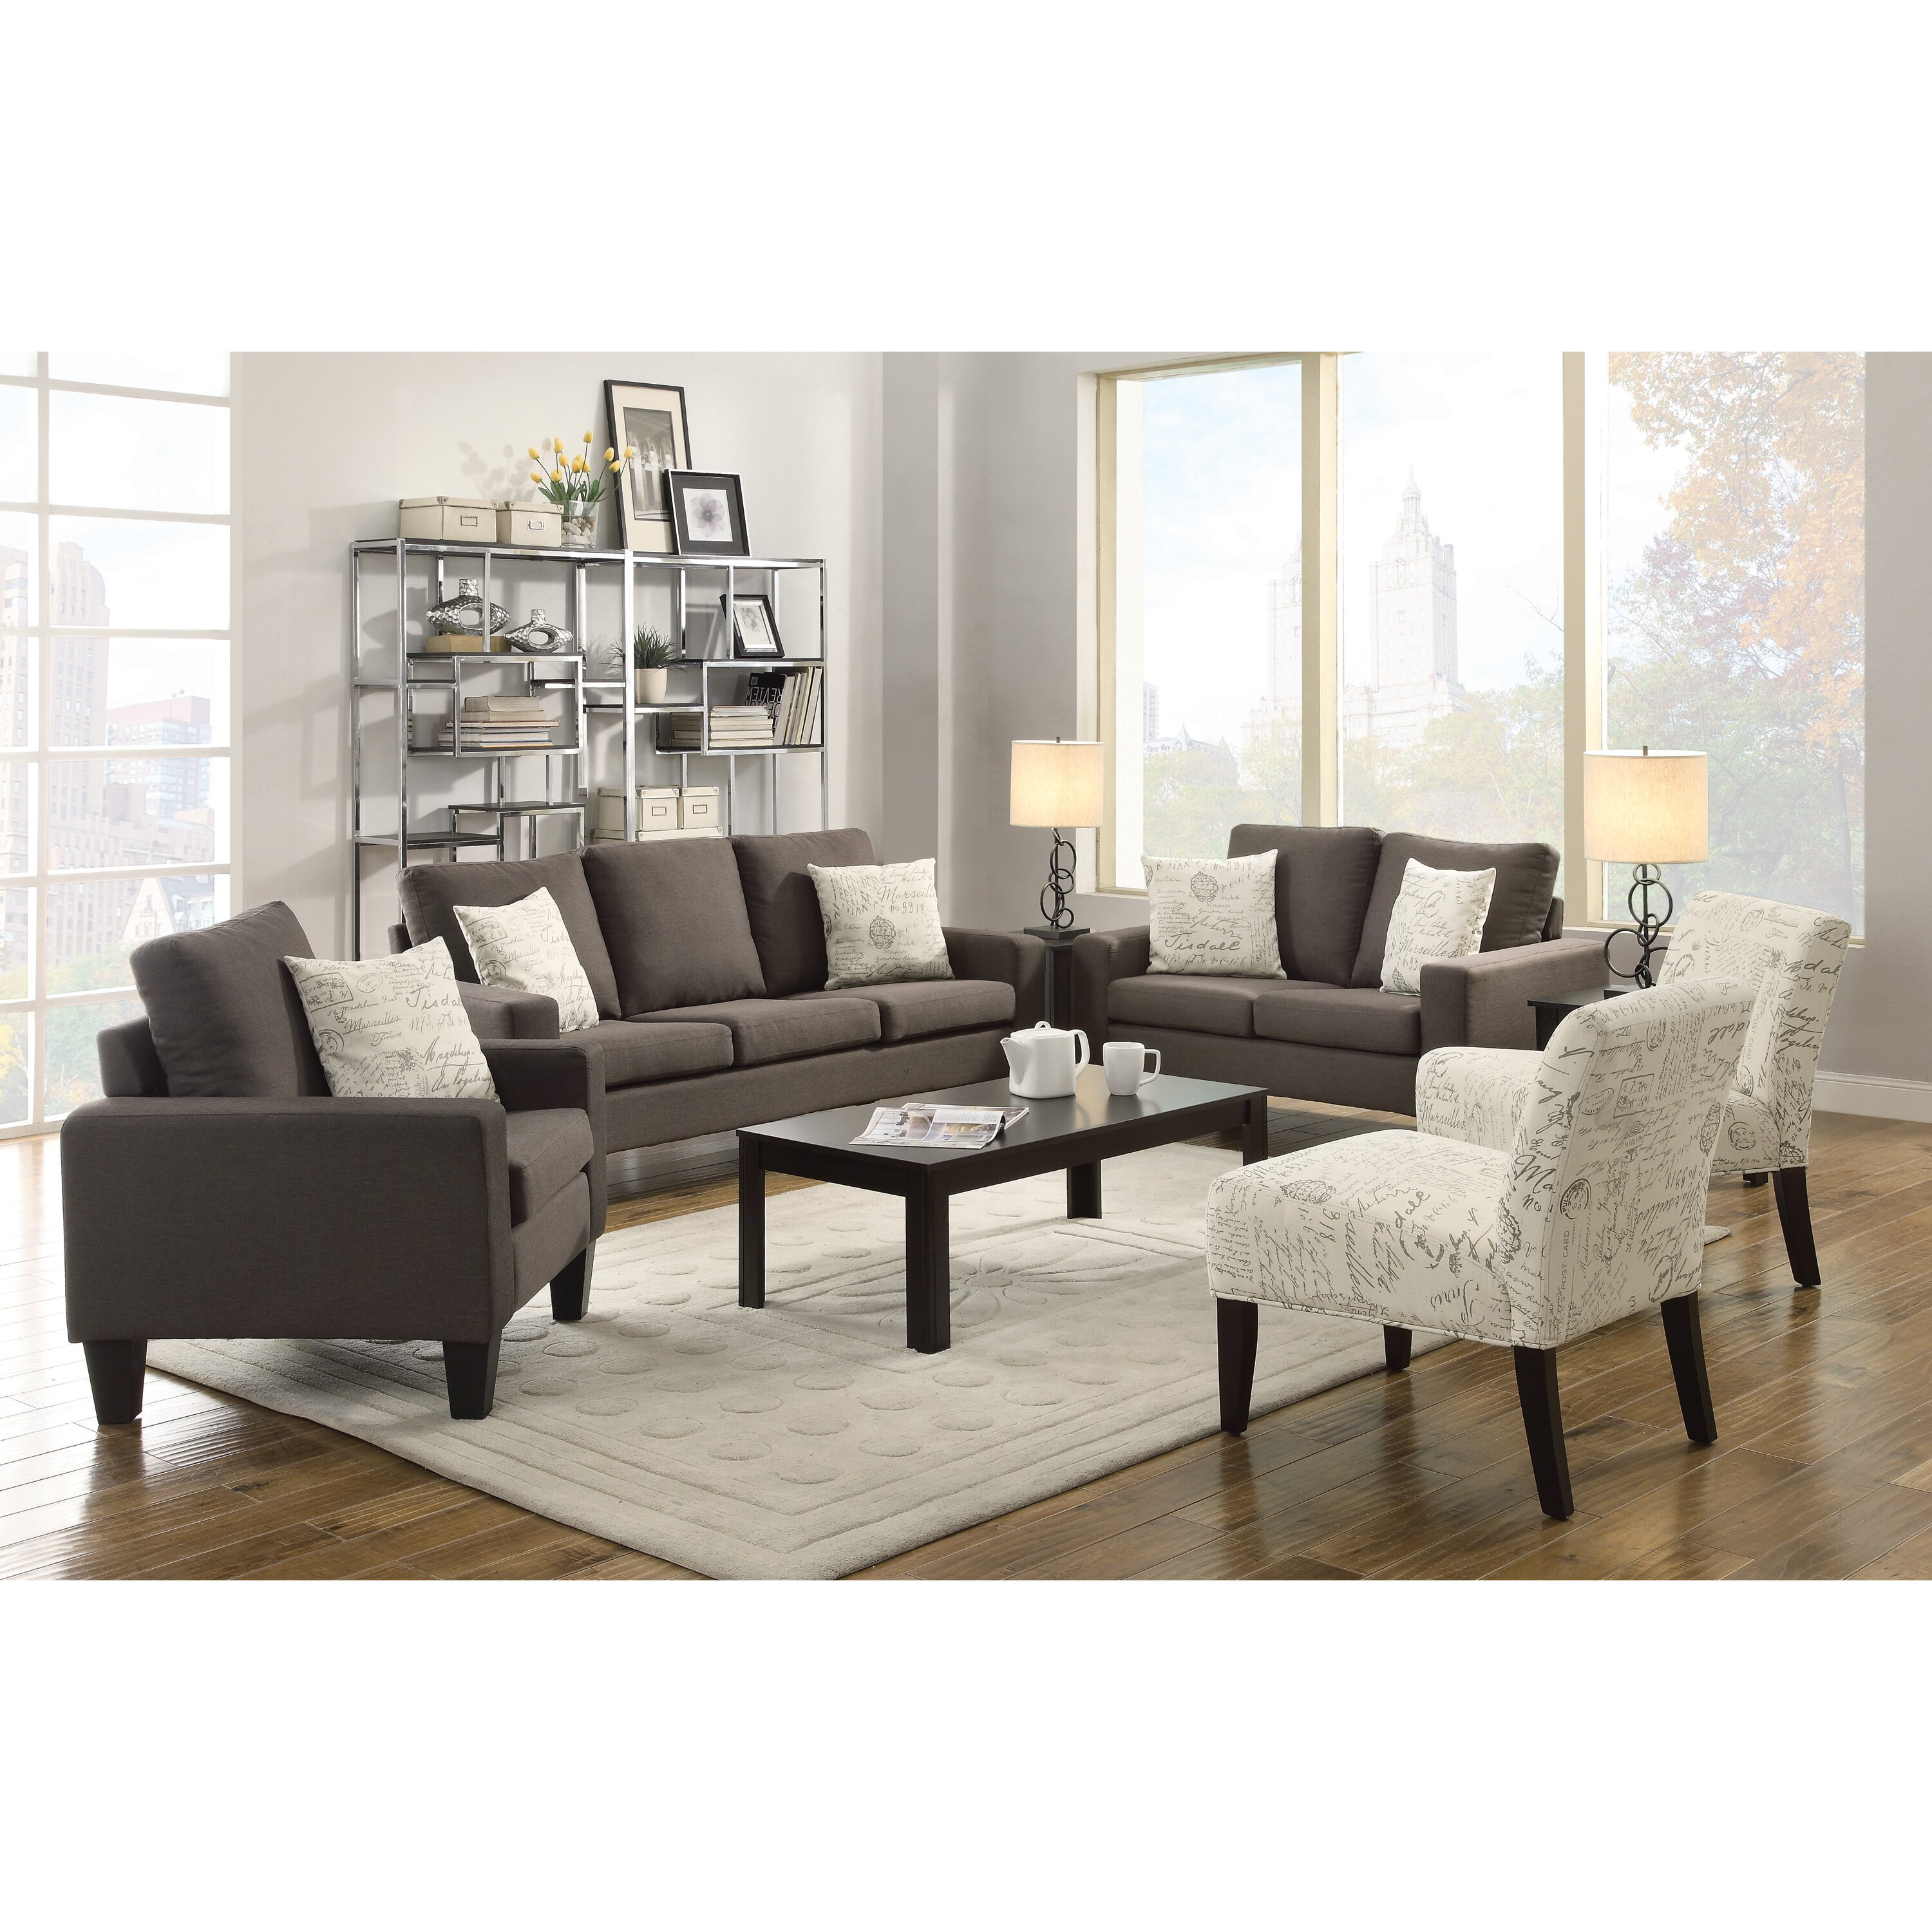 Latitude run living room collection reviews wayfair for Living room furniture modern